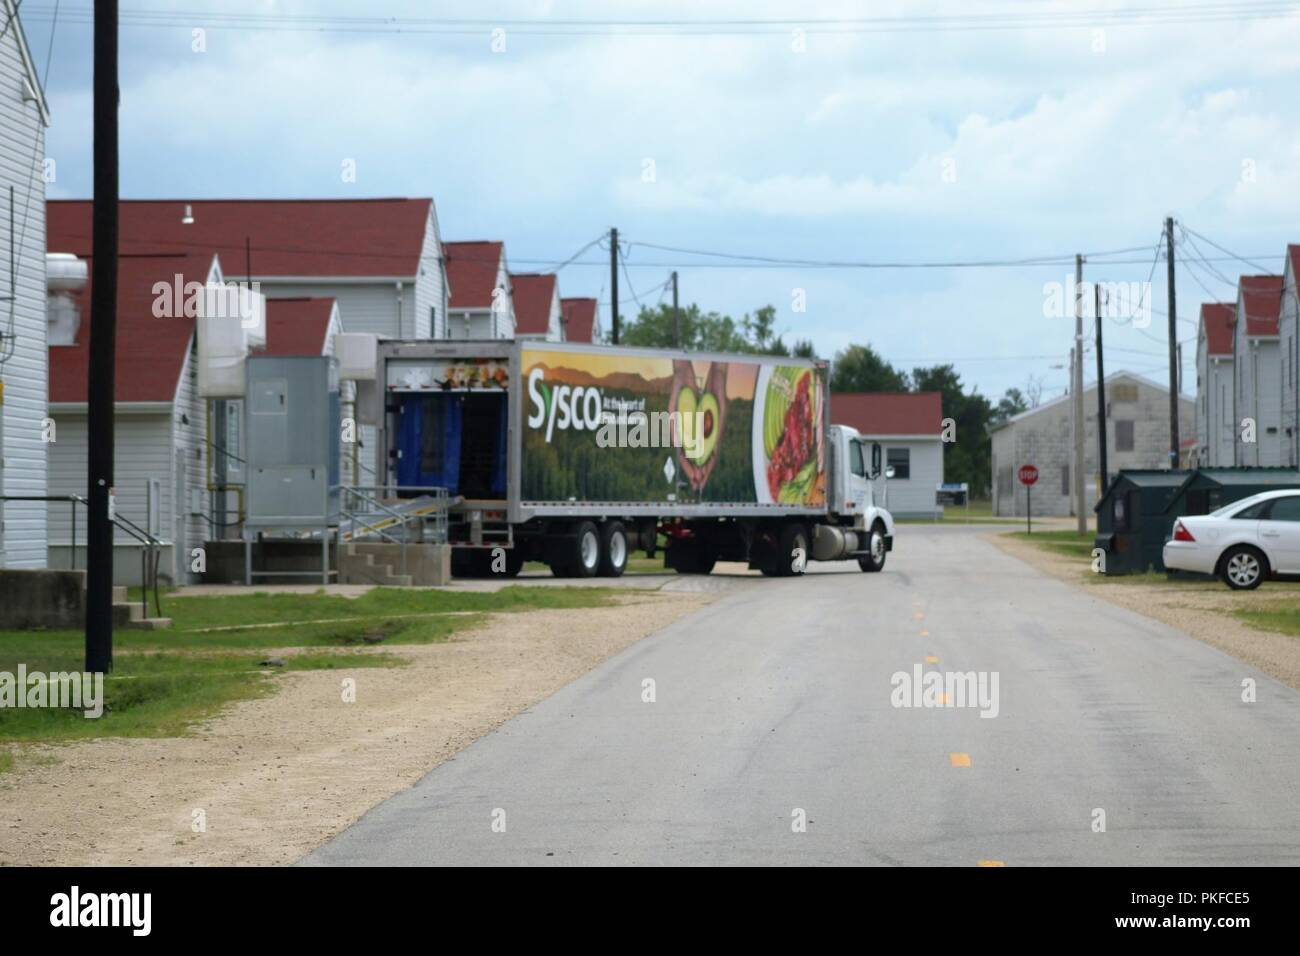 A truck with food supplier Sysco Foods of Baraboo, Wis , is